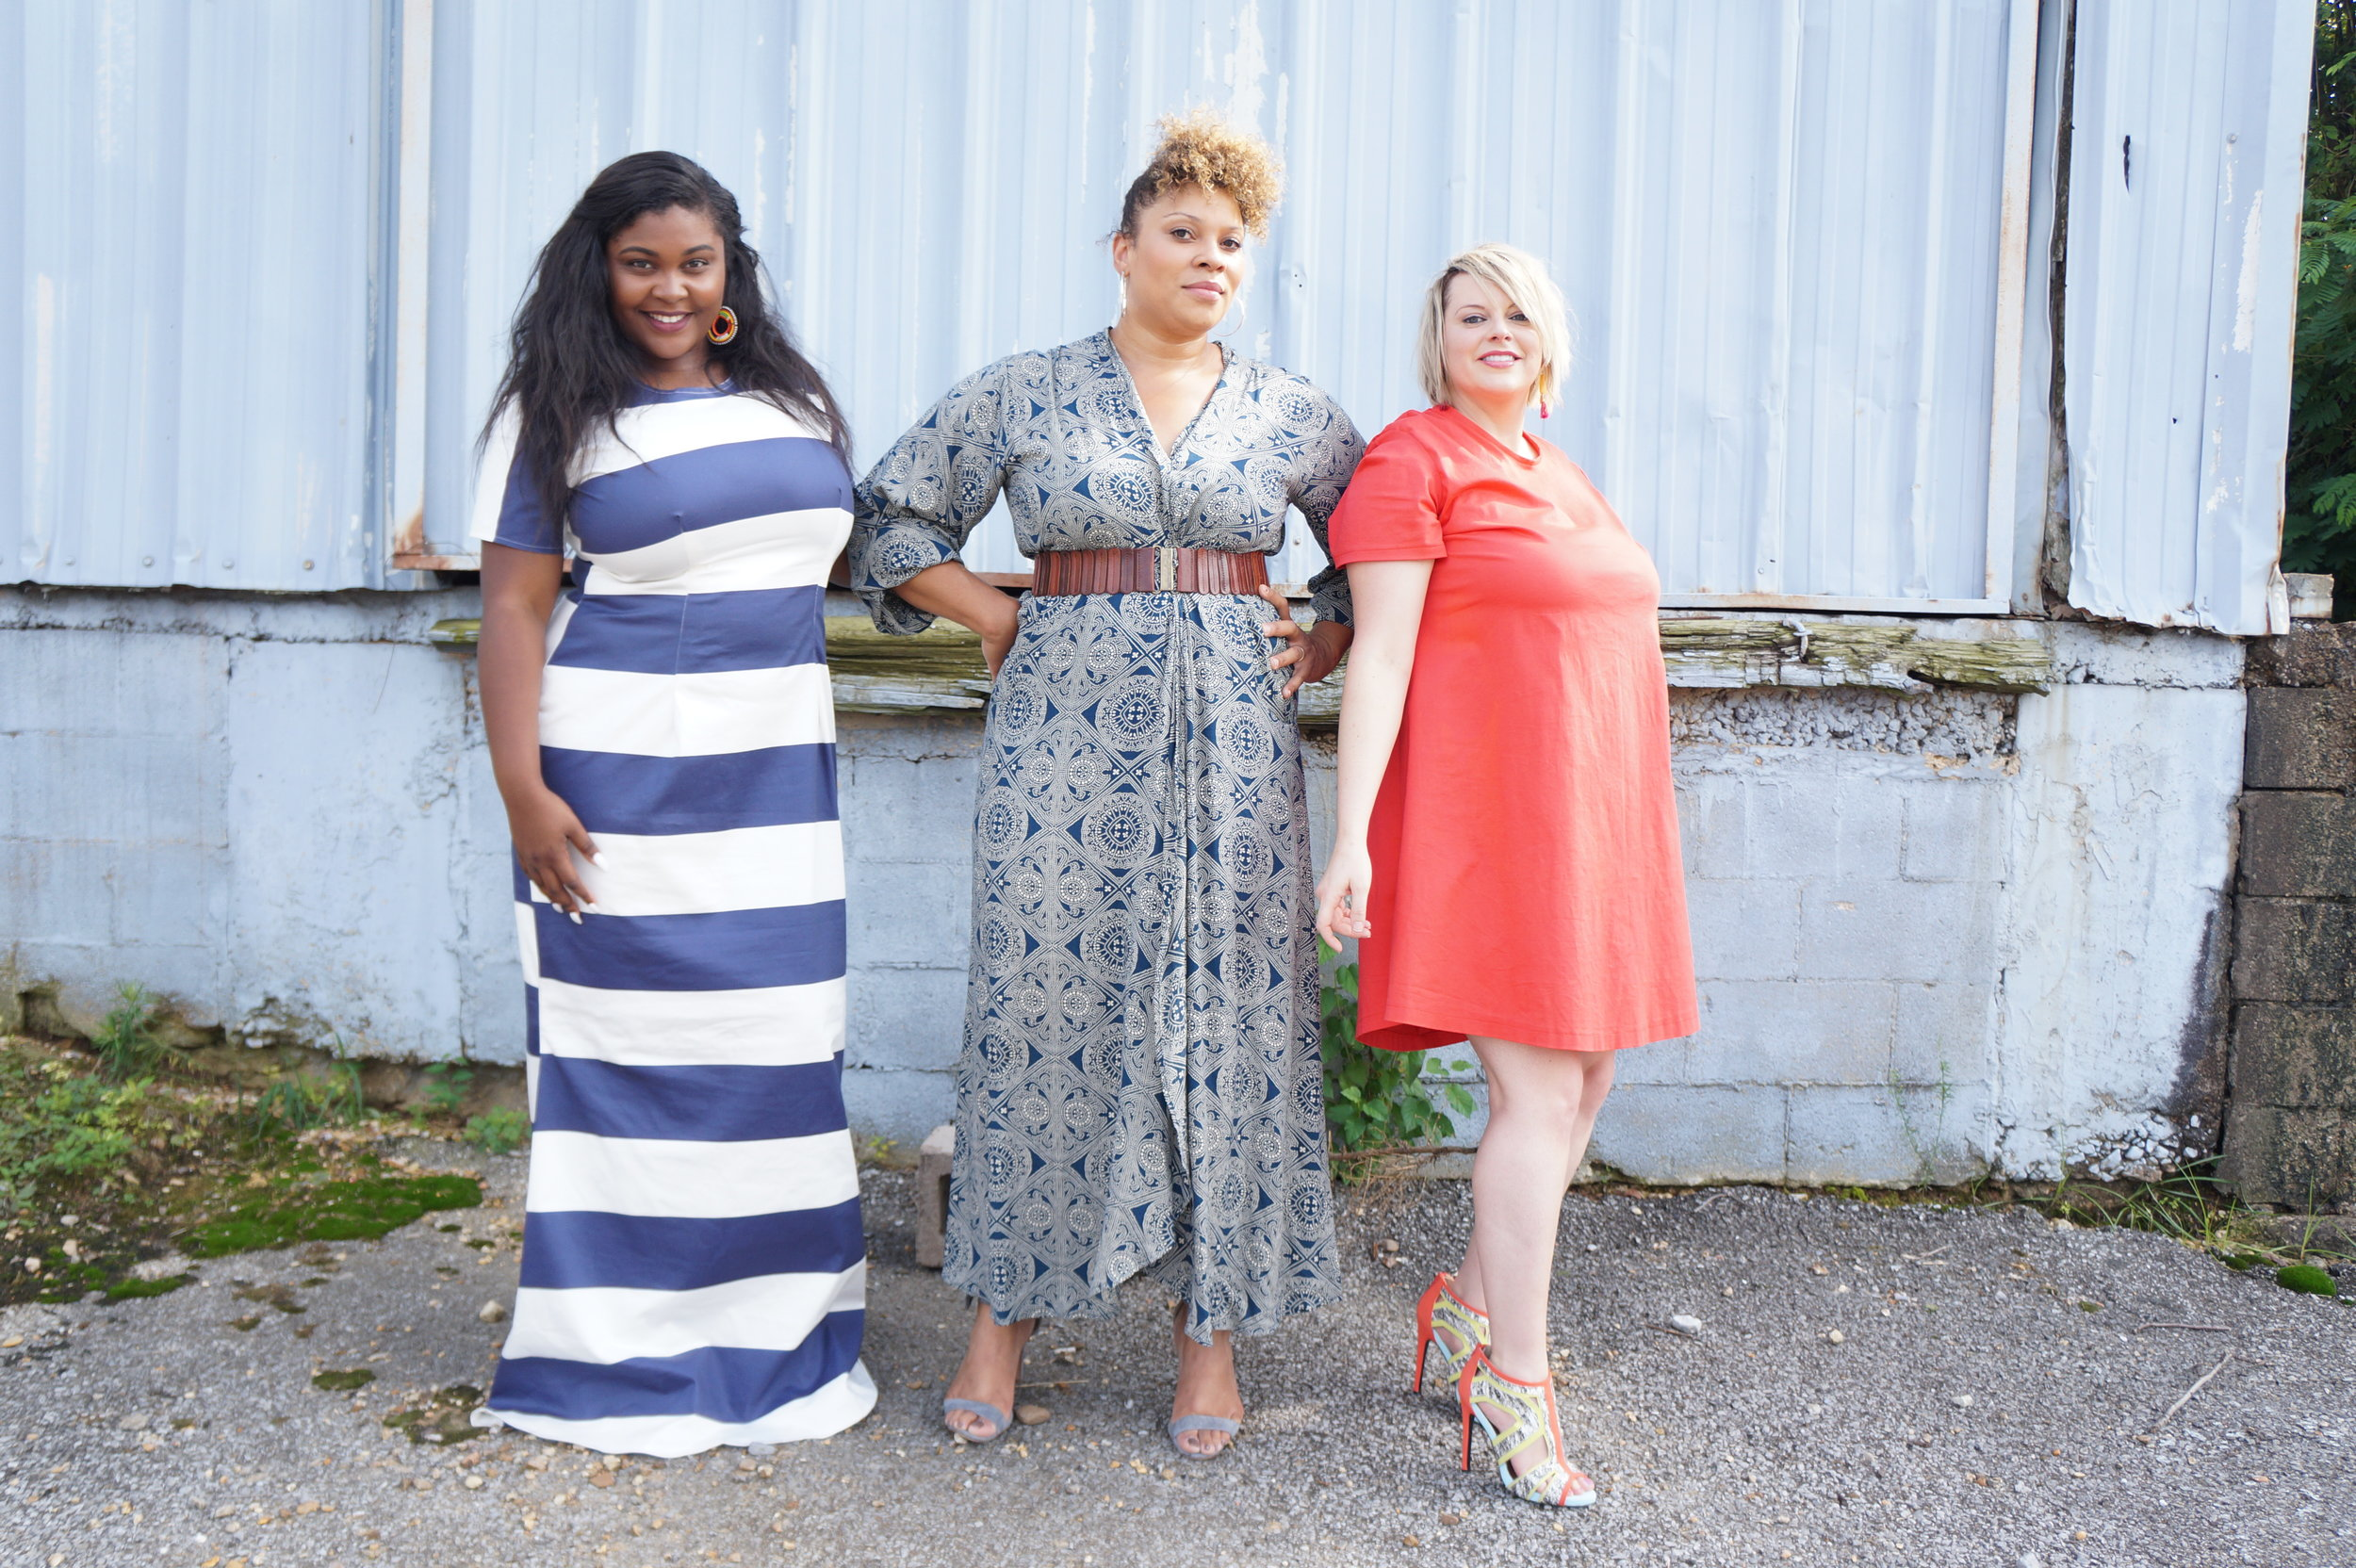 Andrea Fenise Memphis Fashion Blogger Working Girl Series featuring Tiena Gwin of T I E N A